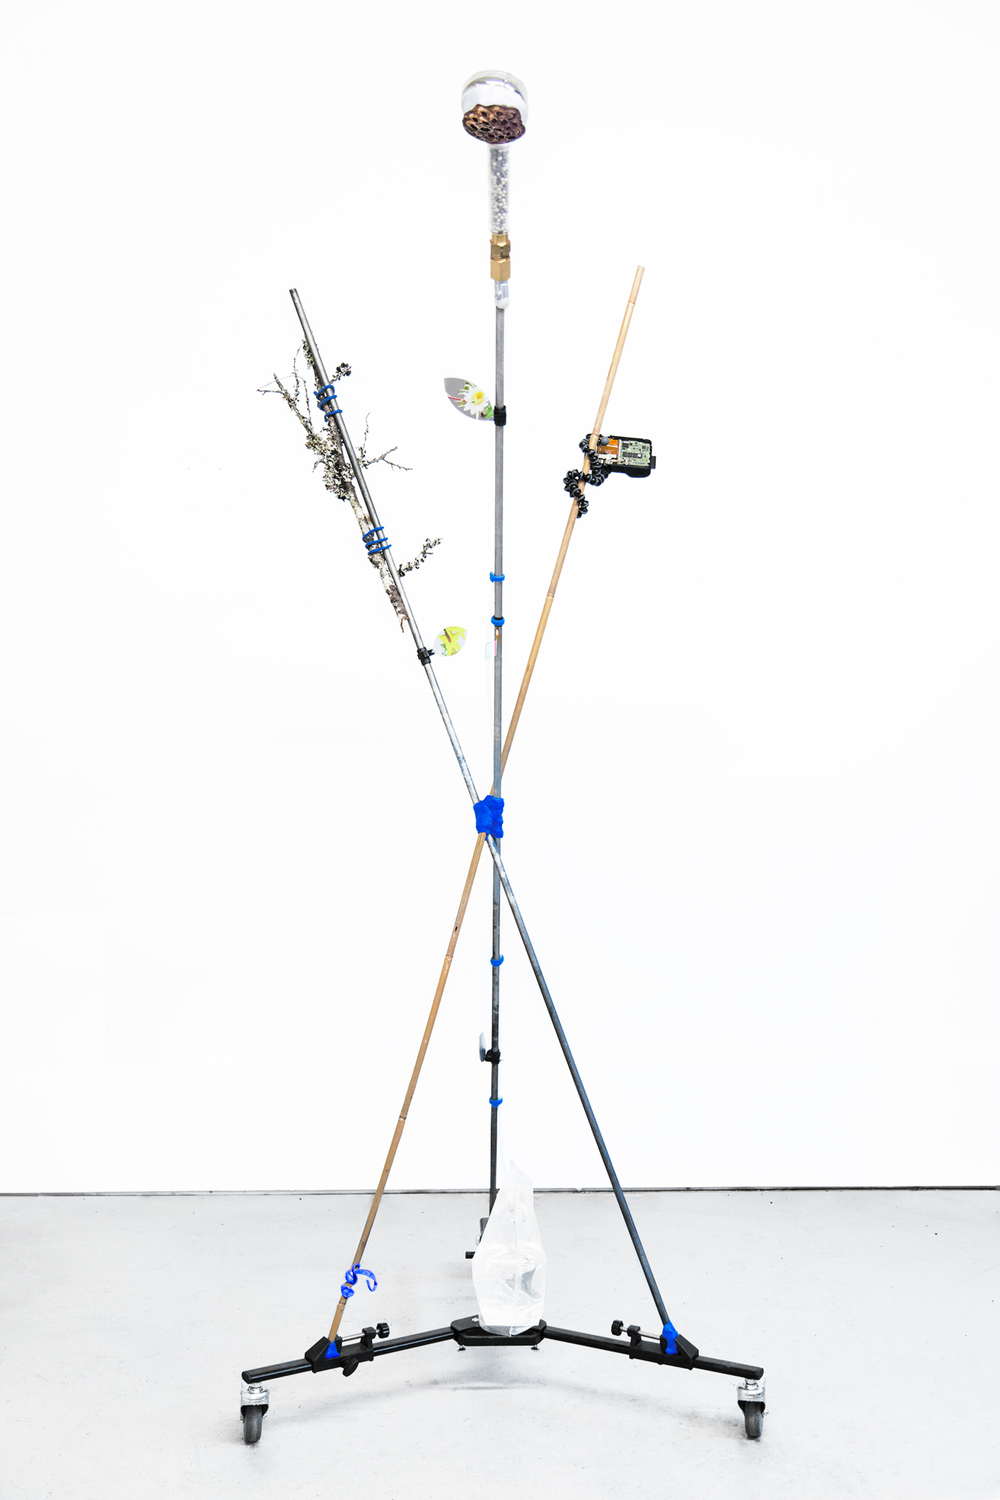 Carson Fisk-Vittori    Weather pollination techniques: out of human visible range , 2016  UV prints on aluminum, aluminum poles, bamboo, hand-formed plastic, lichen covered branch, lotus seed pod, digital camera, flexible tripod, negative ion showerhead, metal and plastic hardware and fixtures, velcro, water, 78 x 36 x 36 inches